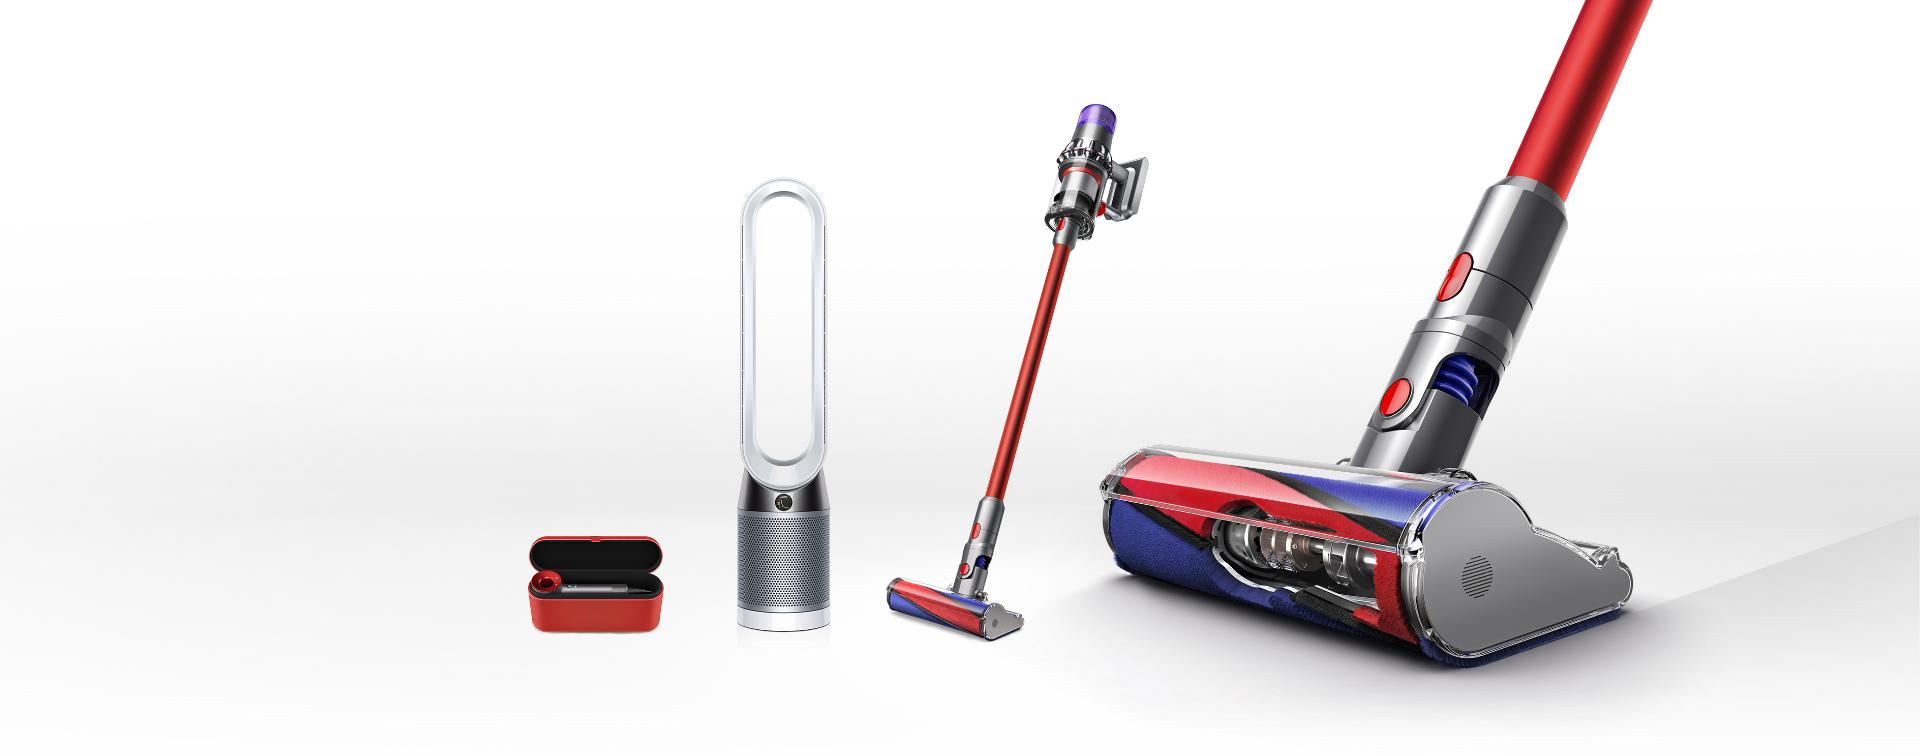 Every reunion is better with Dyson technology.